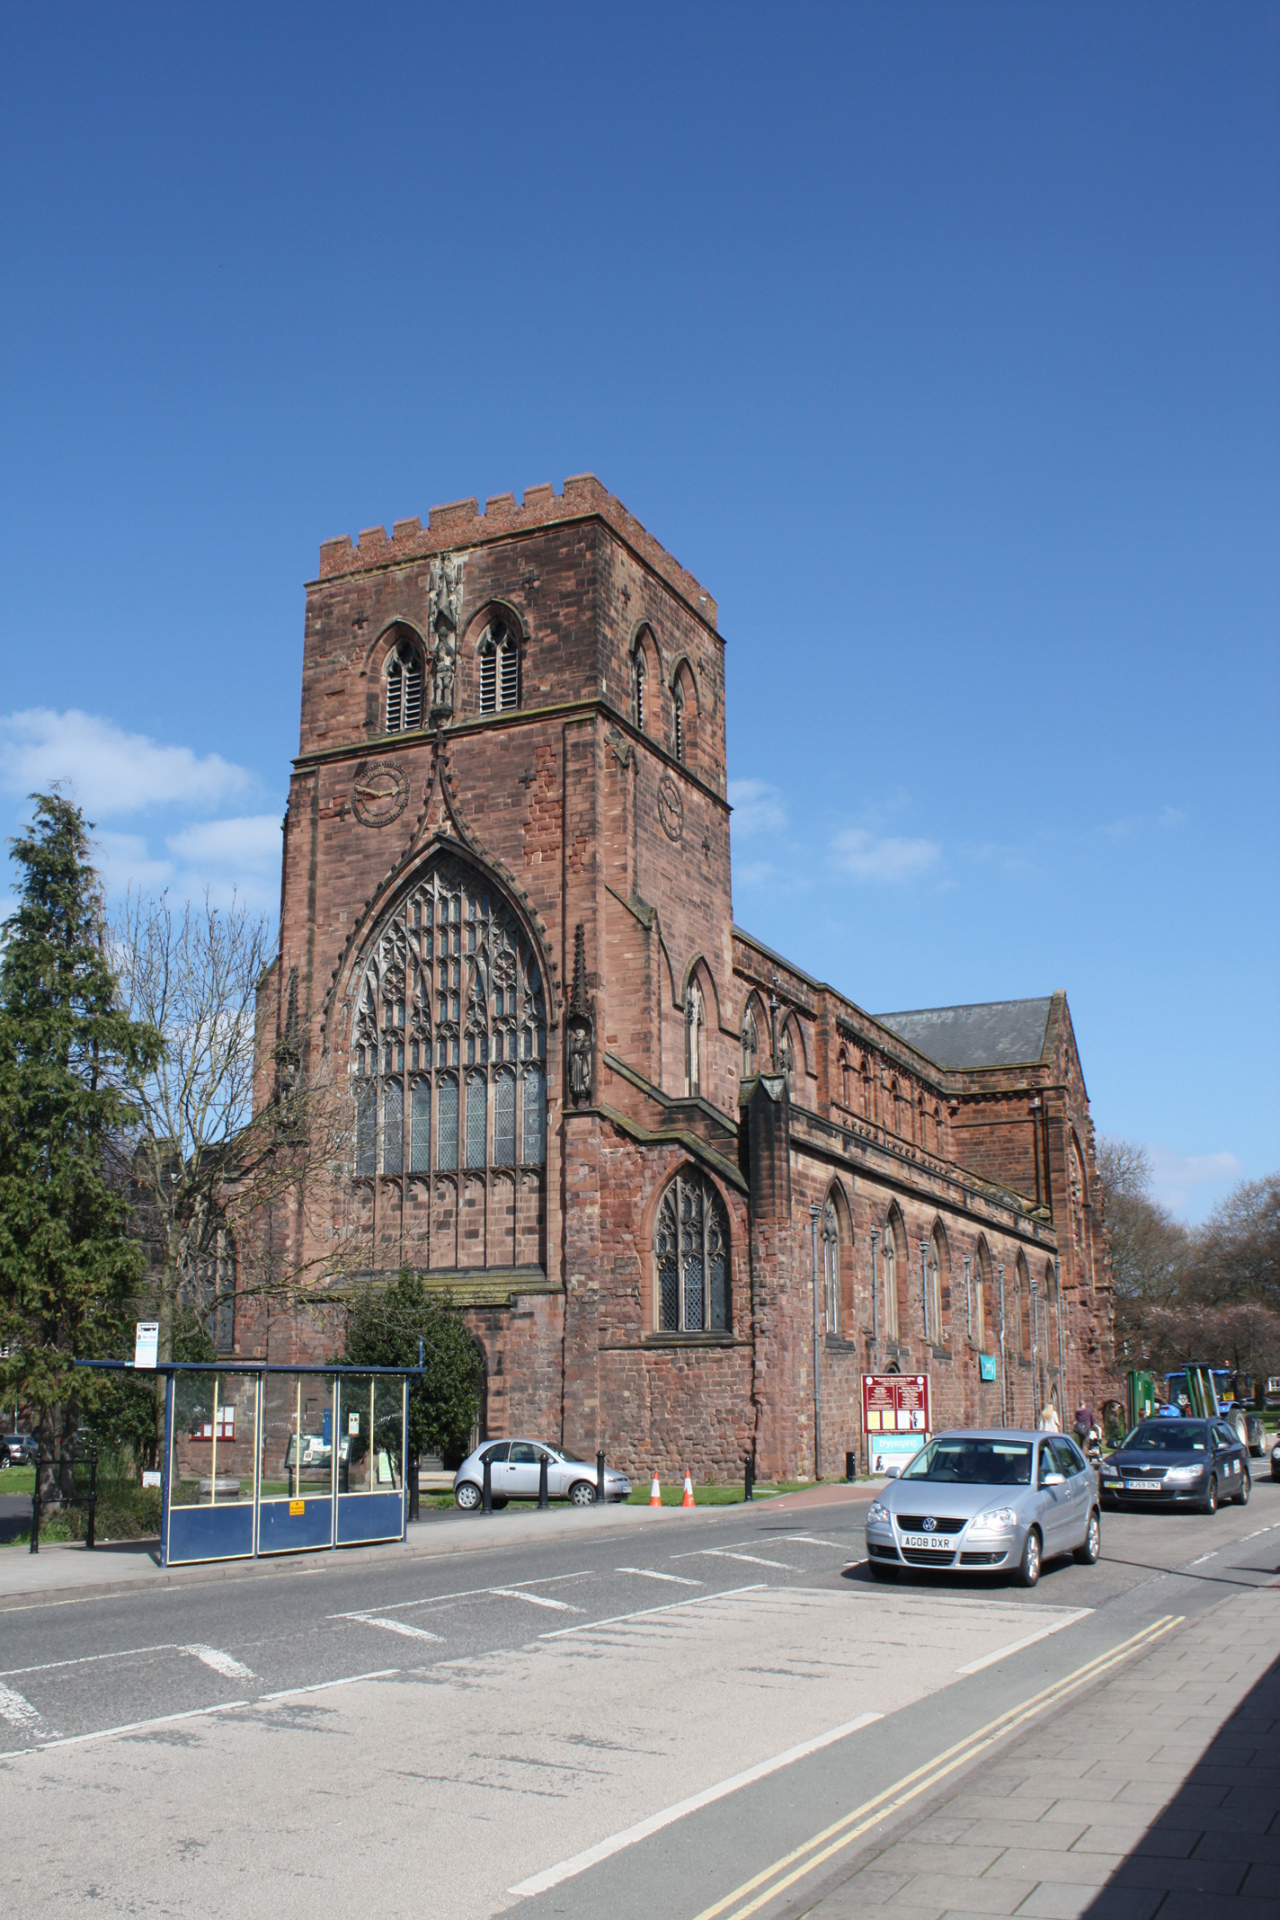 Shrewsbury Abbey (Shropshire) by Conservation architects Baart Harries Newall (BHN architects) based in Shrewsbury.